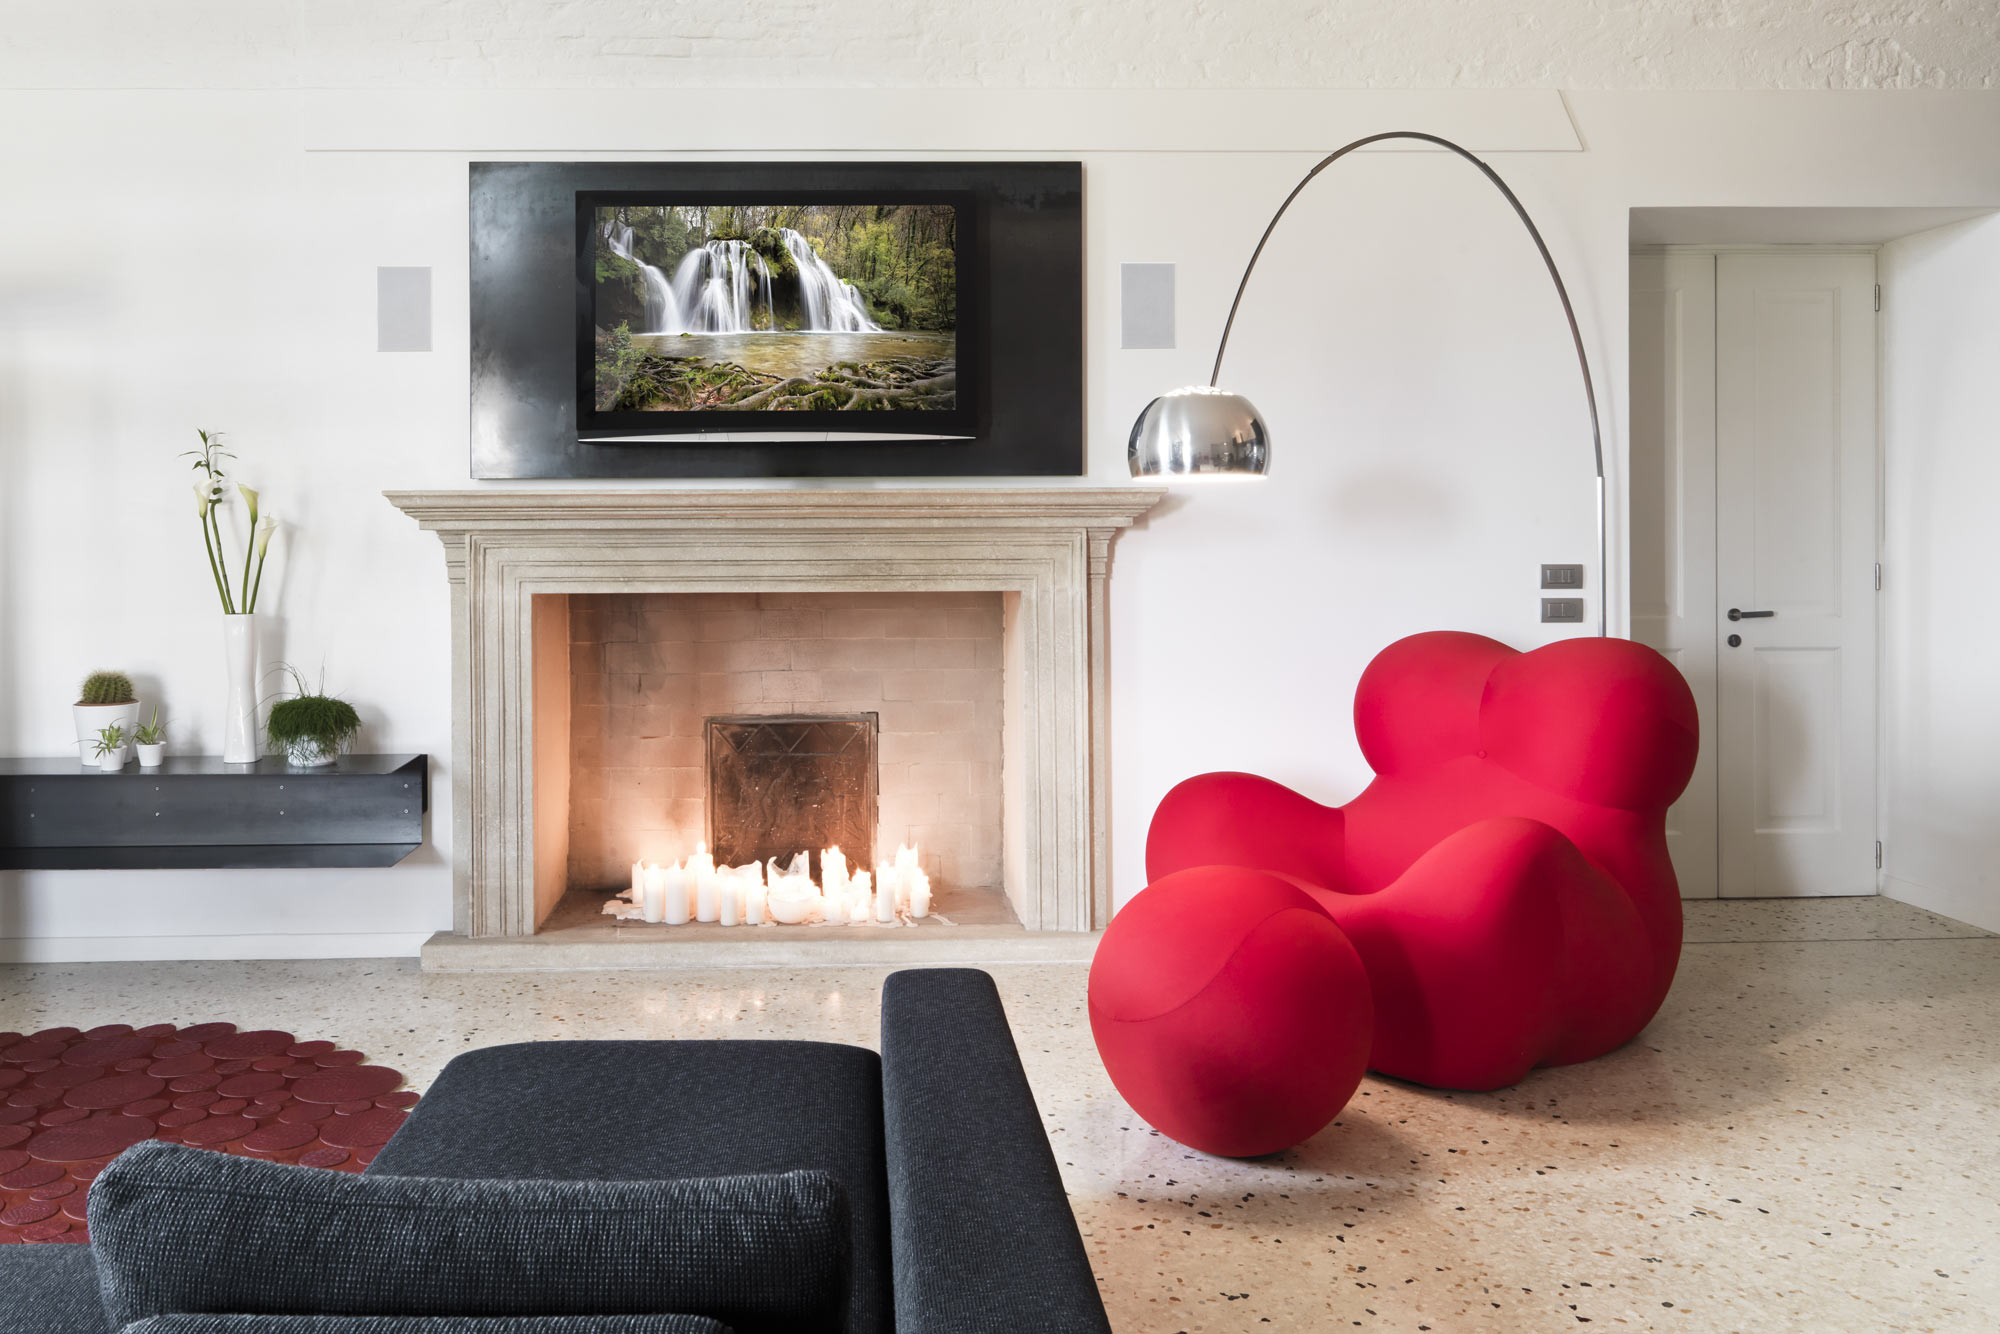 Waterfall_In_Wall_Salon_Red_SD